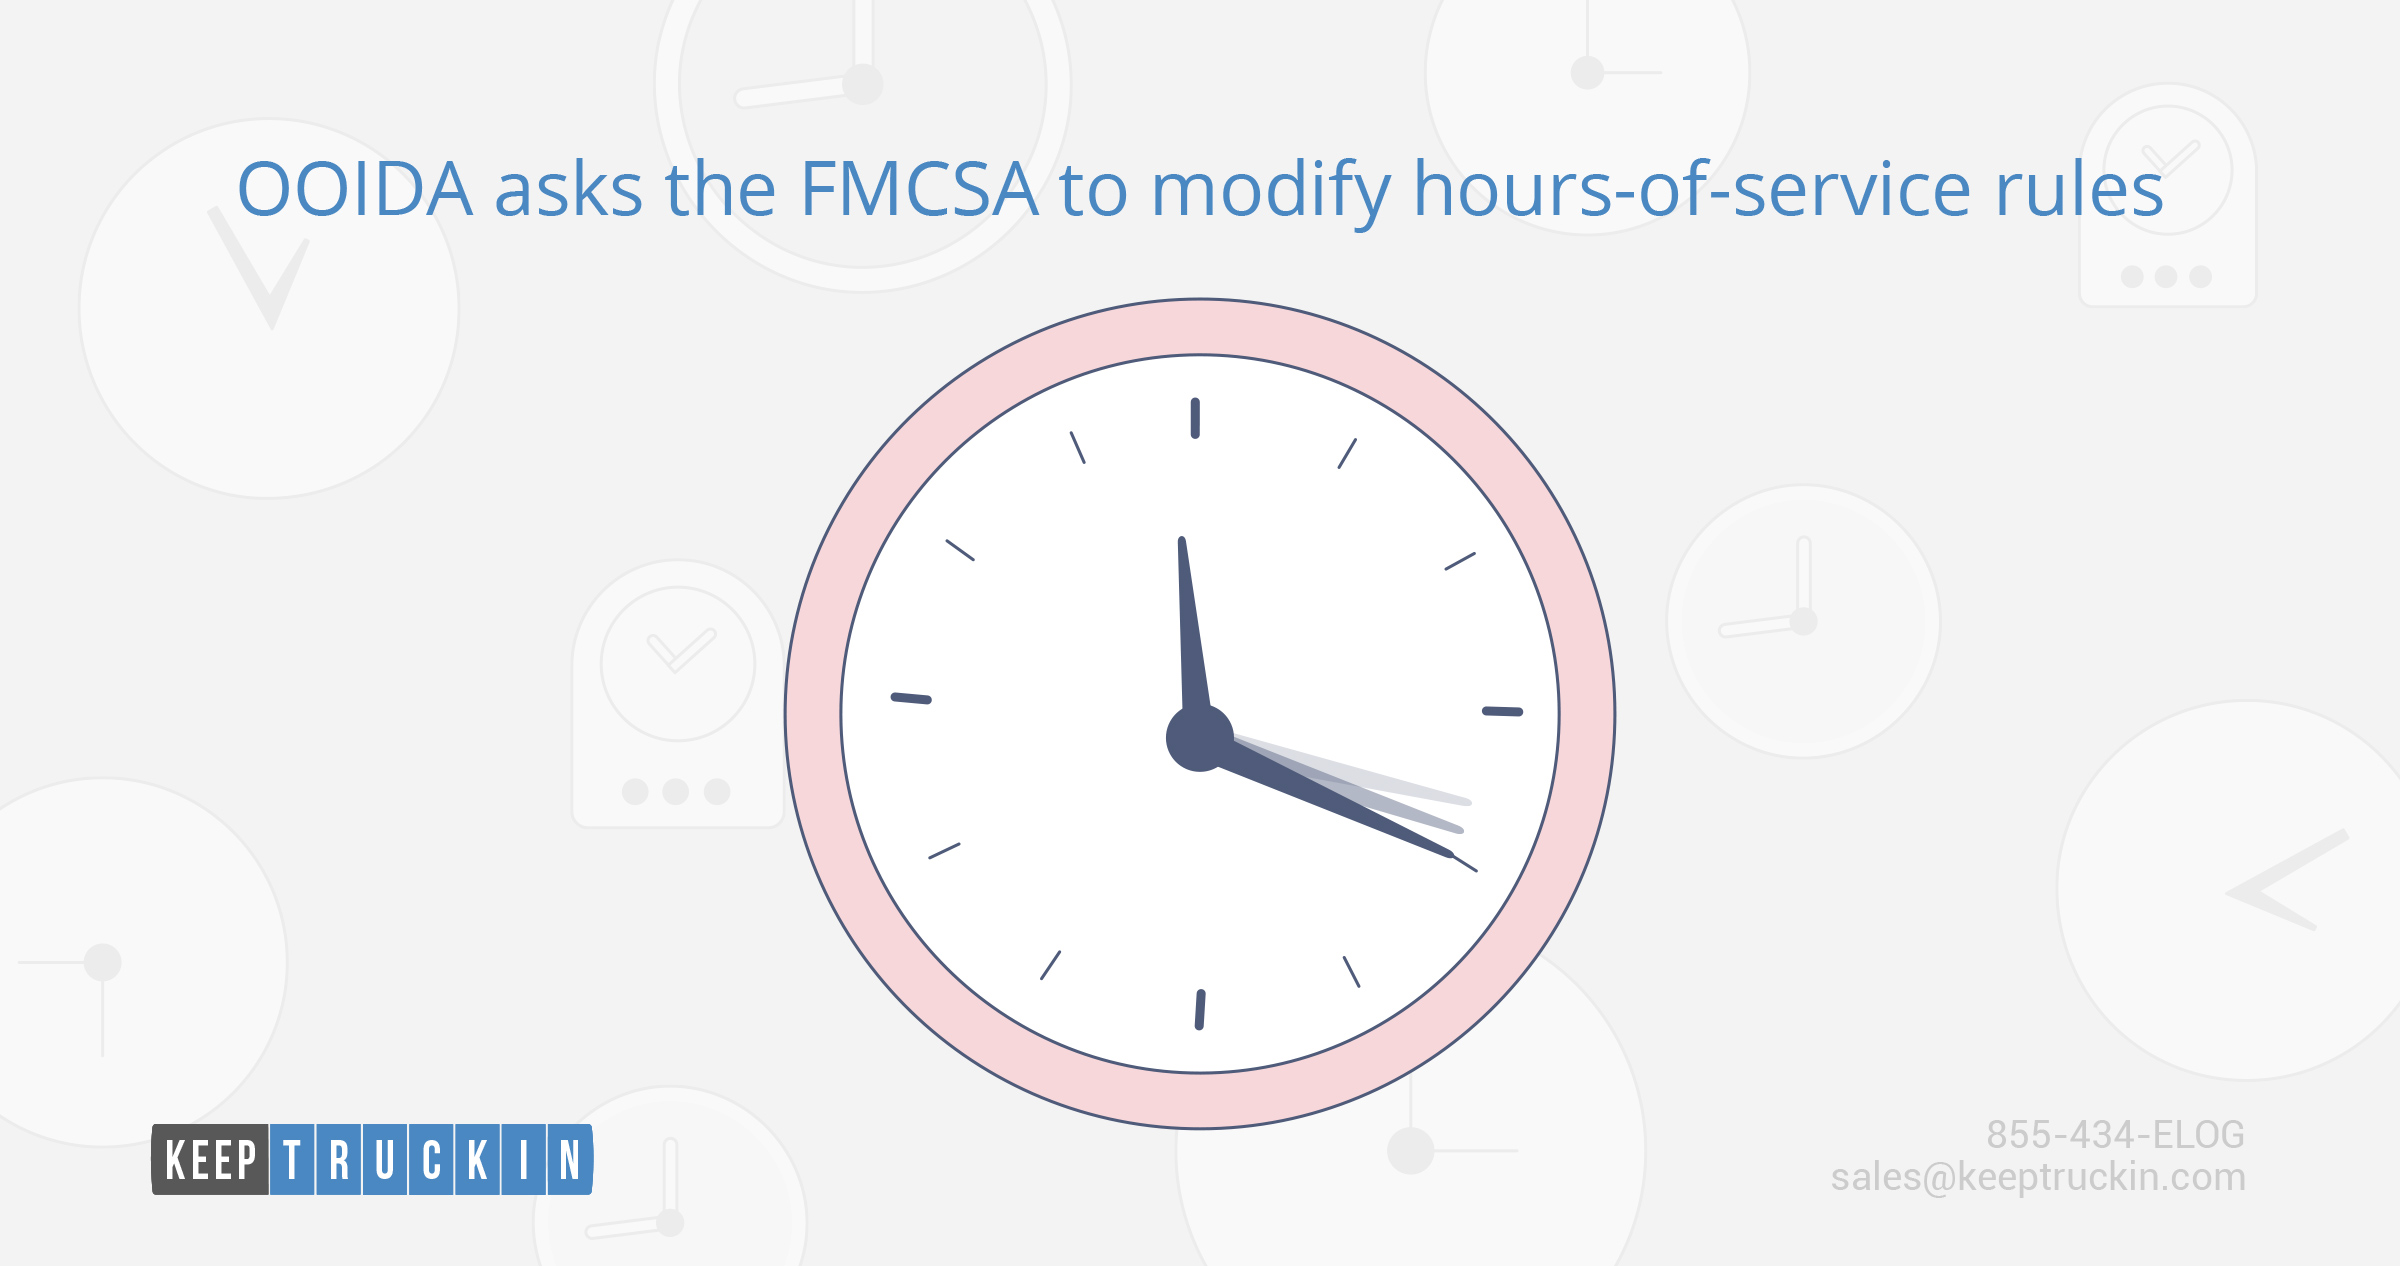 OOIDA asks the FMCSA to modify hours-of-service rules